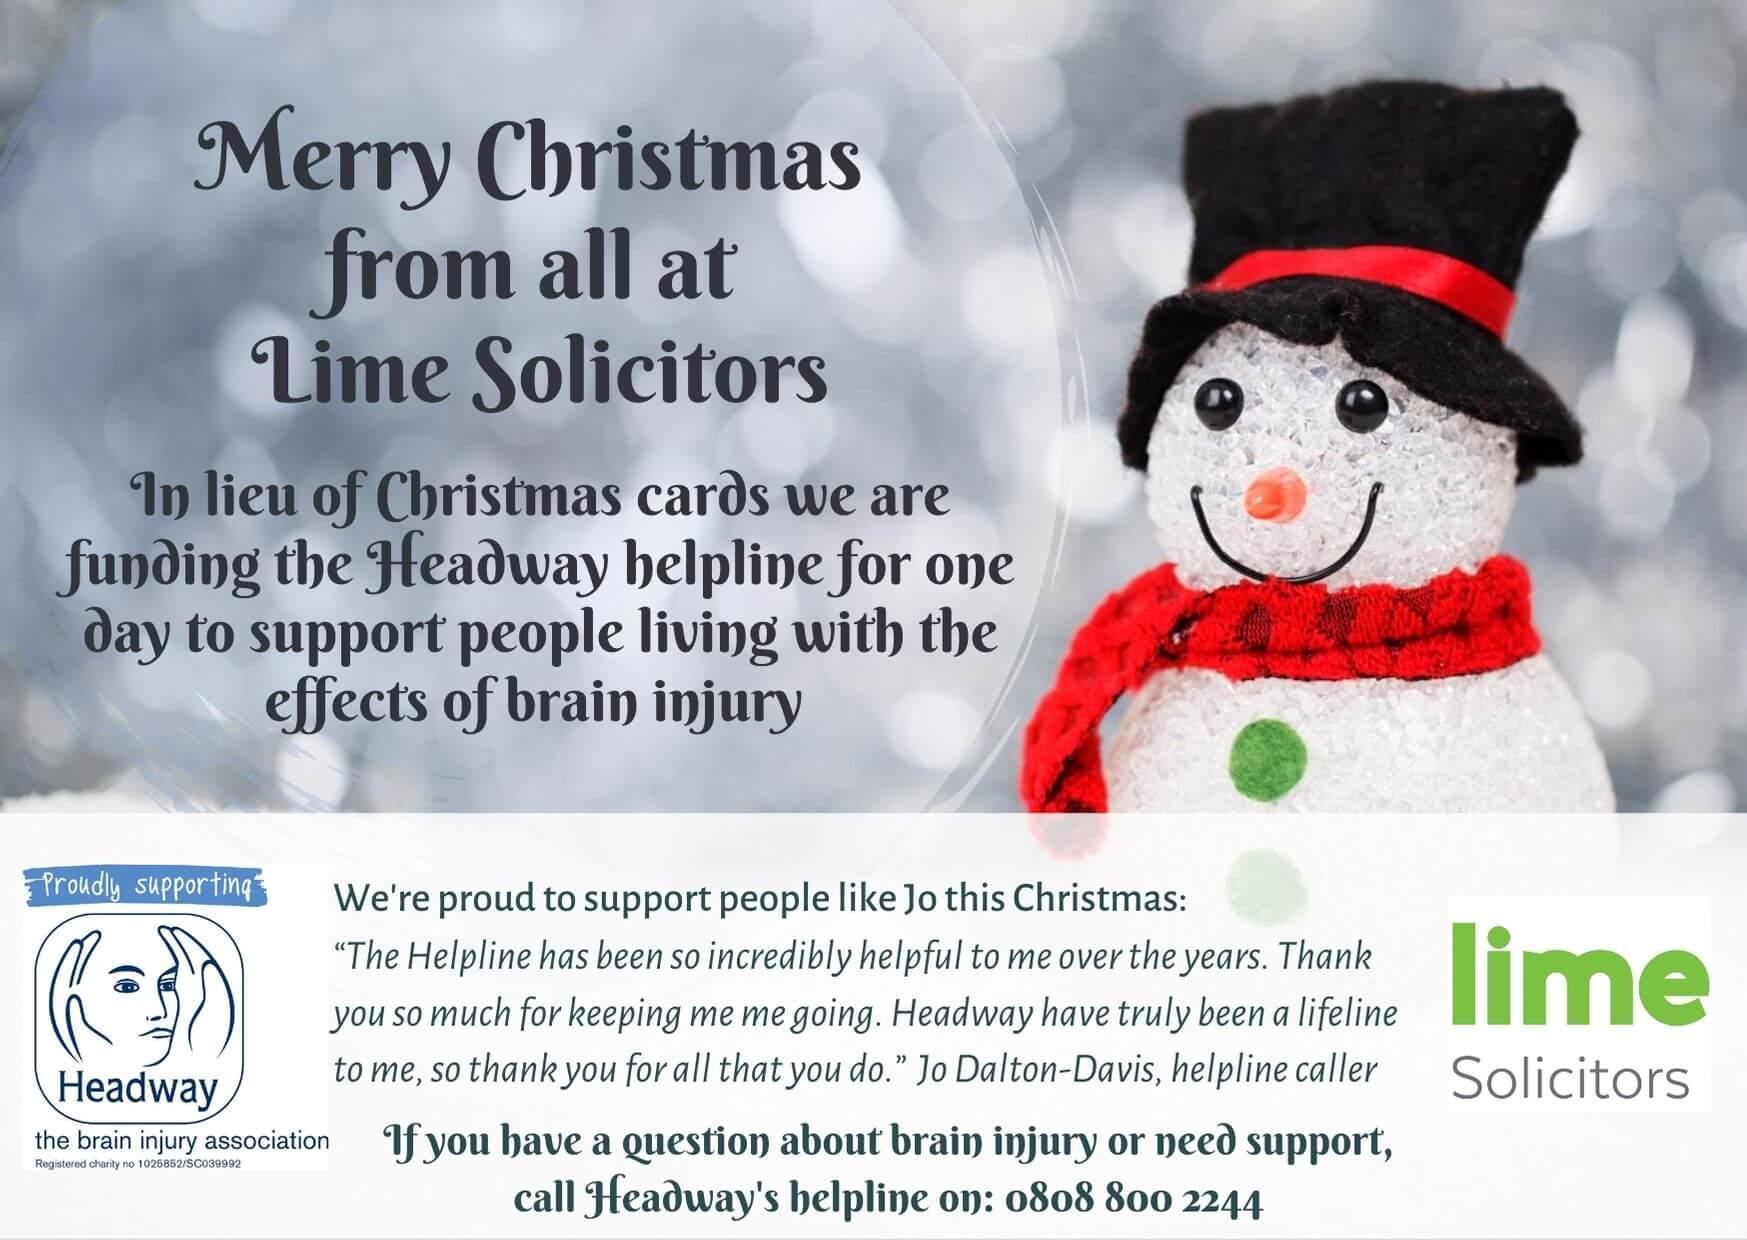 Merry Christmas from Lime Solicitors